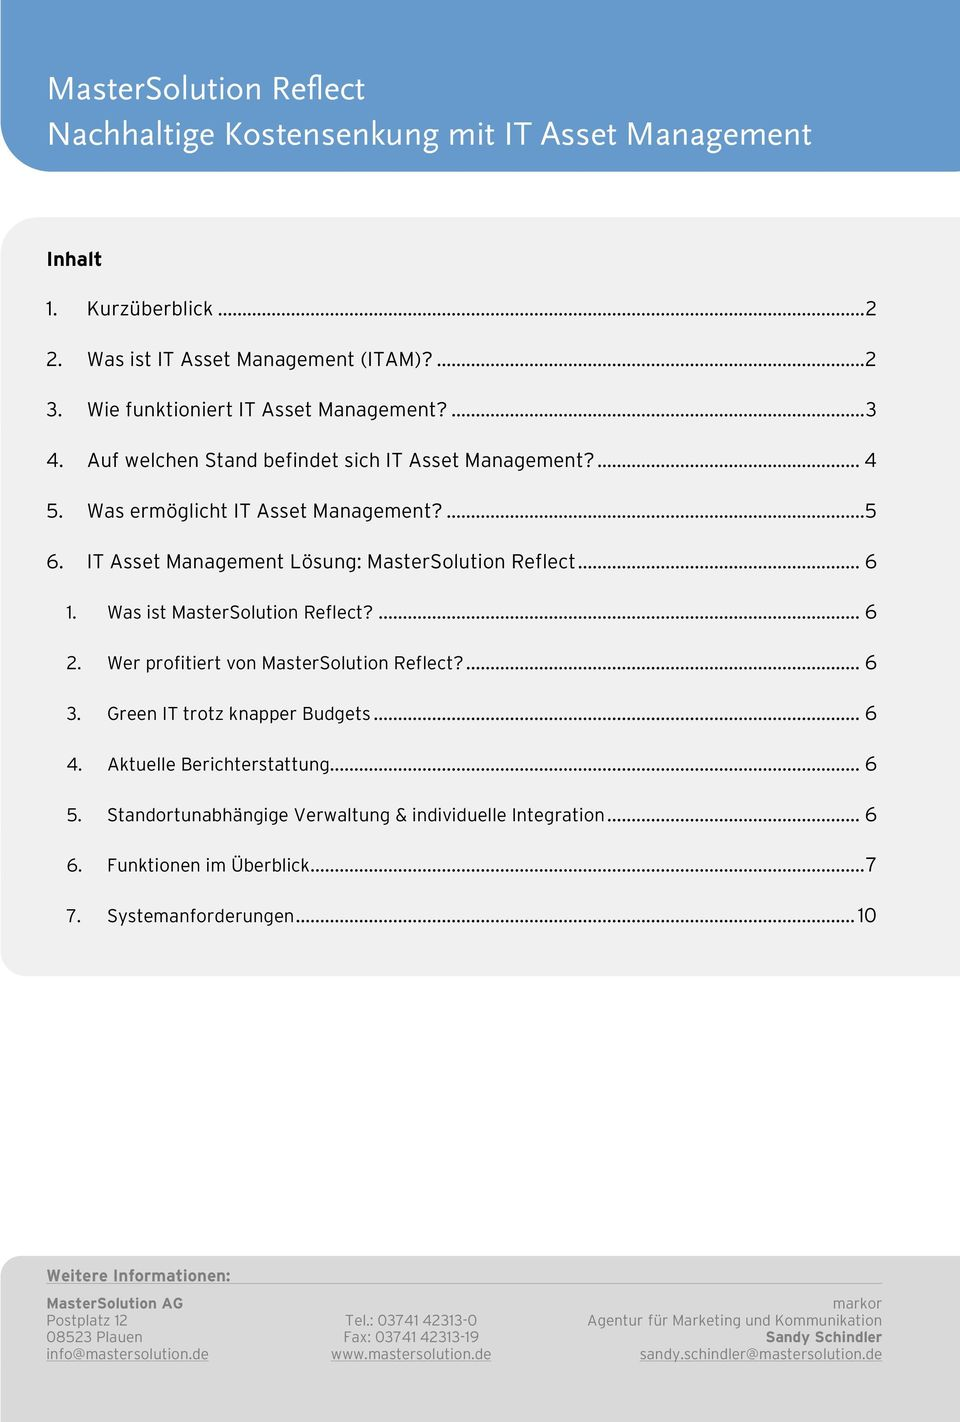 IT Asset Management Lösung: MasterSolution Reflect... 6 1. Was ist MasterSolution Reflect?... 6 2. Wer profitiert von MasterSolution Reflect?